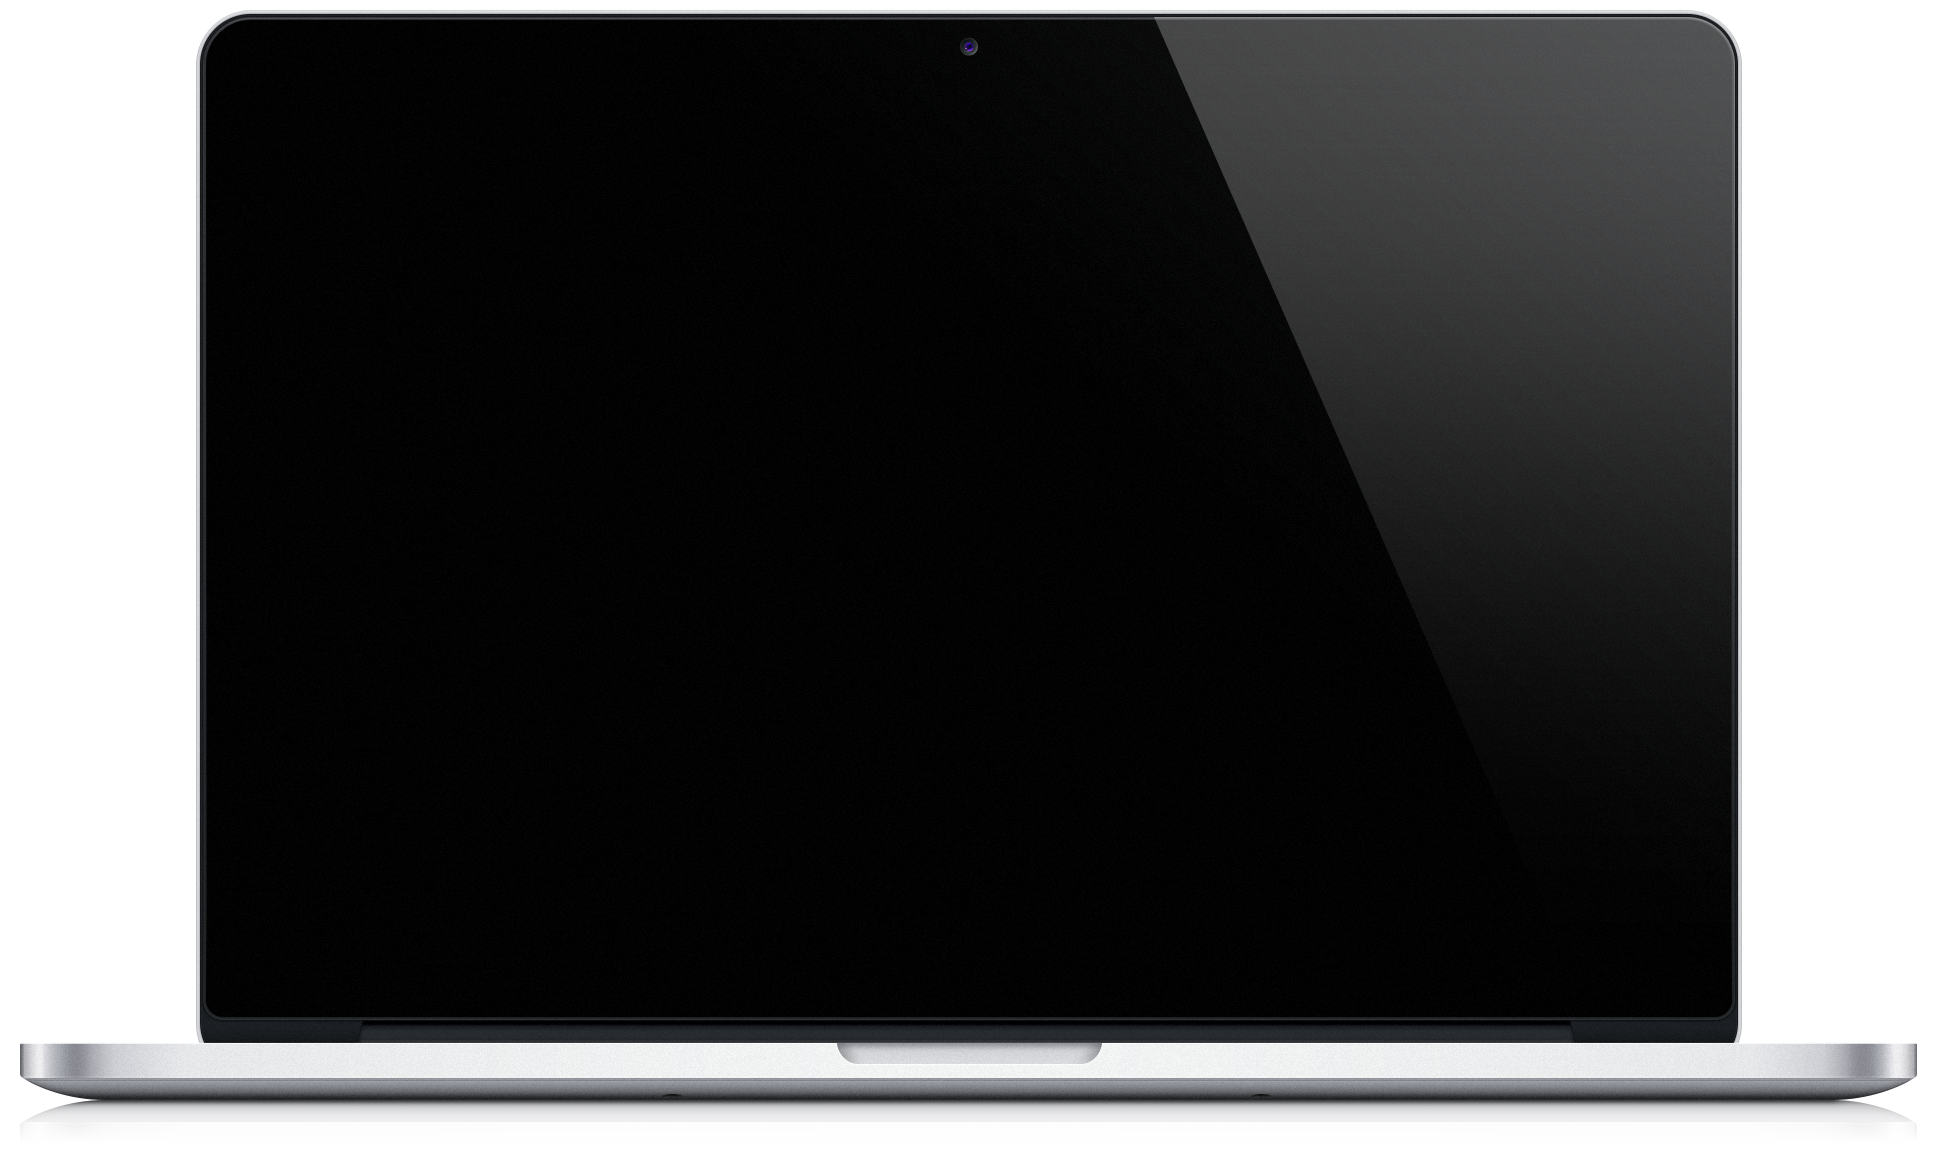 MacBook Pro Retina 15,4 inch - TechPlaza